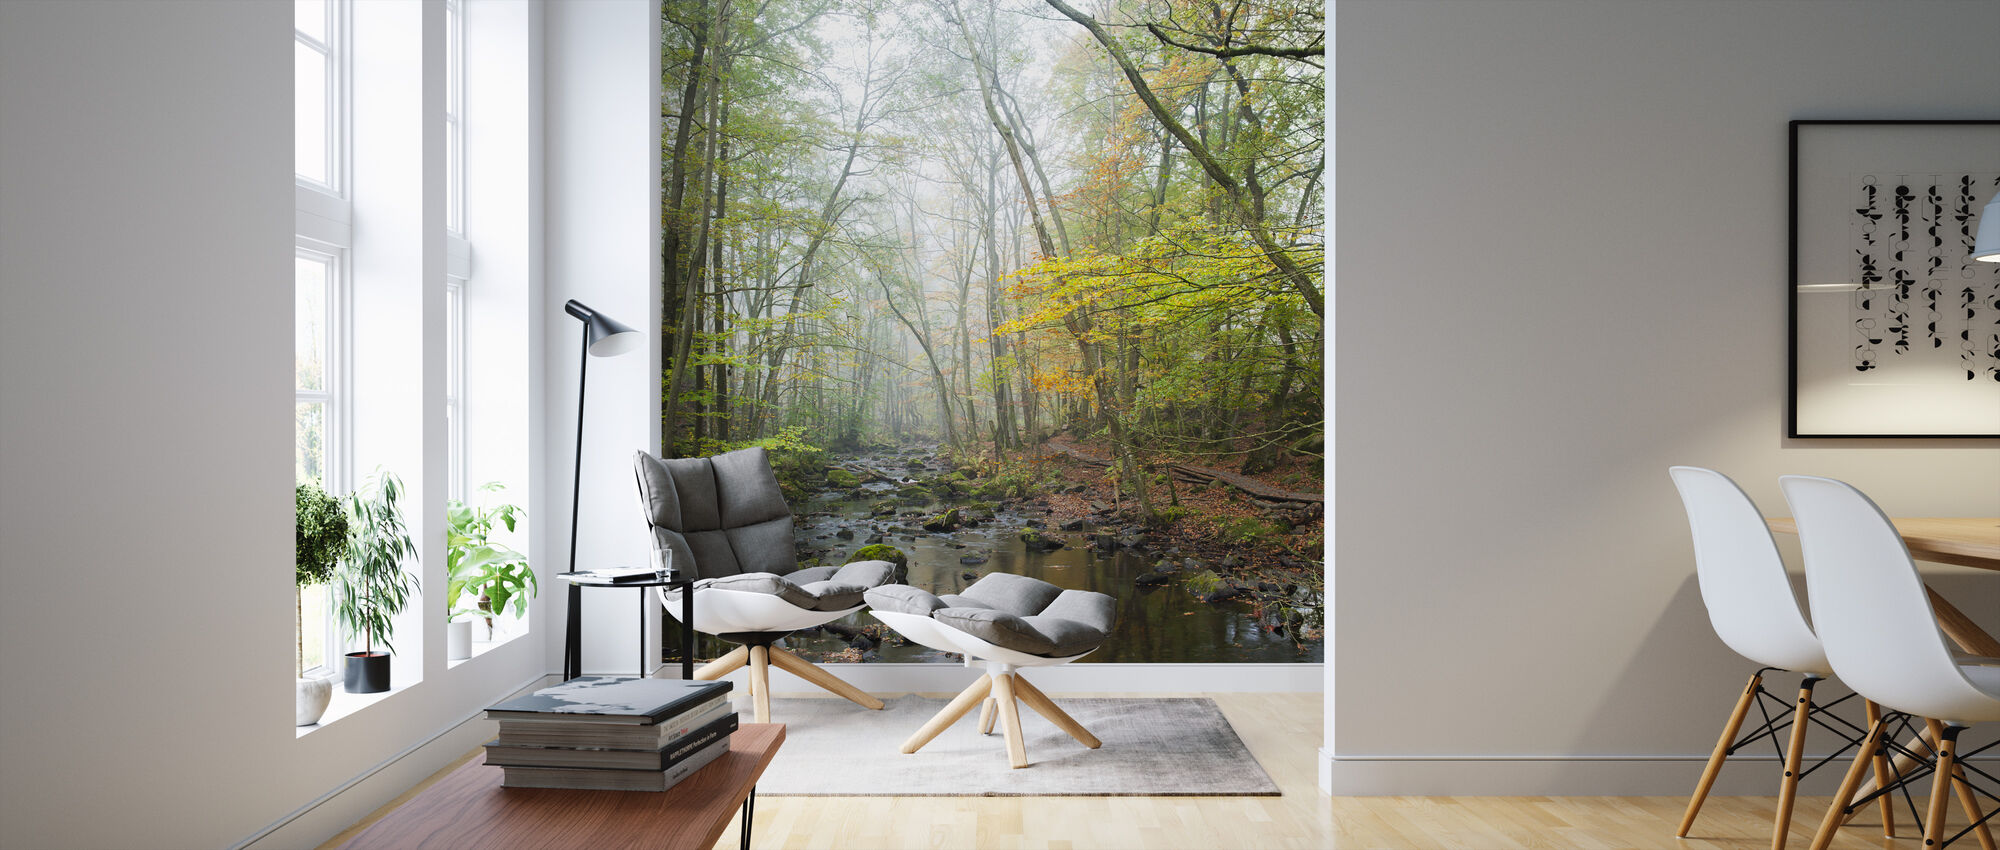 Stream in Swedish Beech Forest I - Wallpaper - Living Room